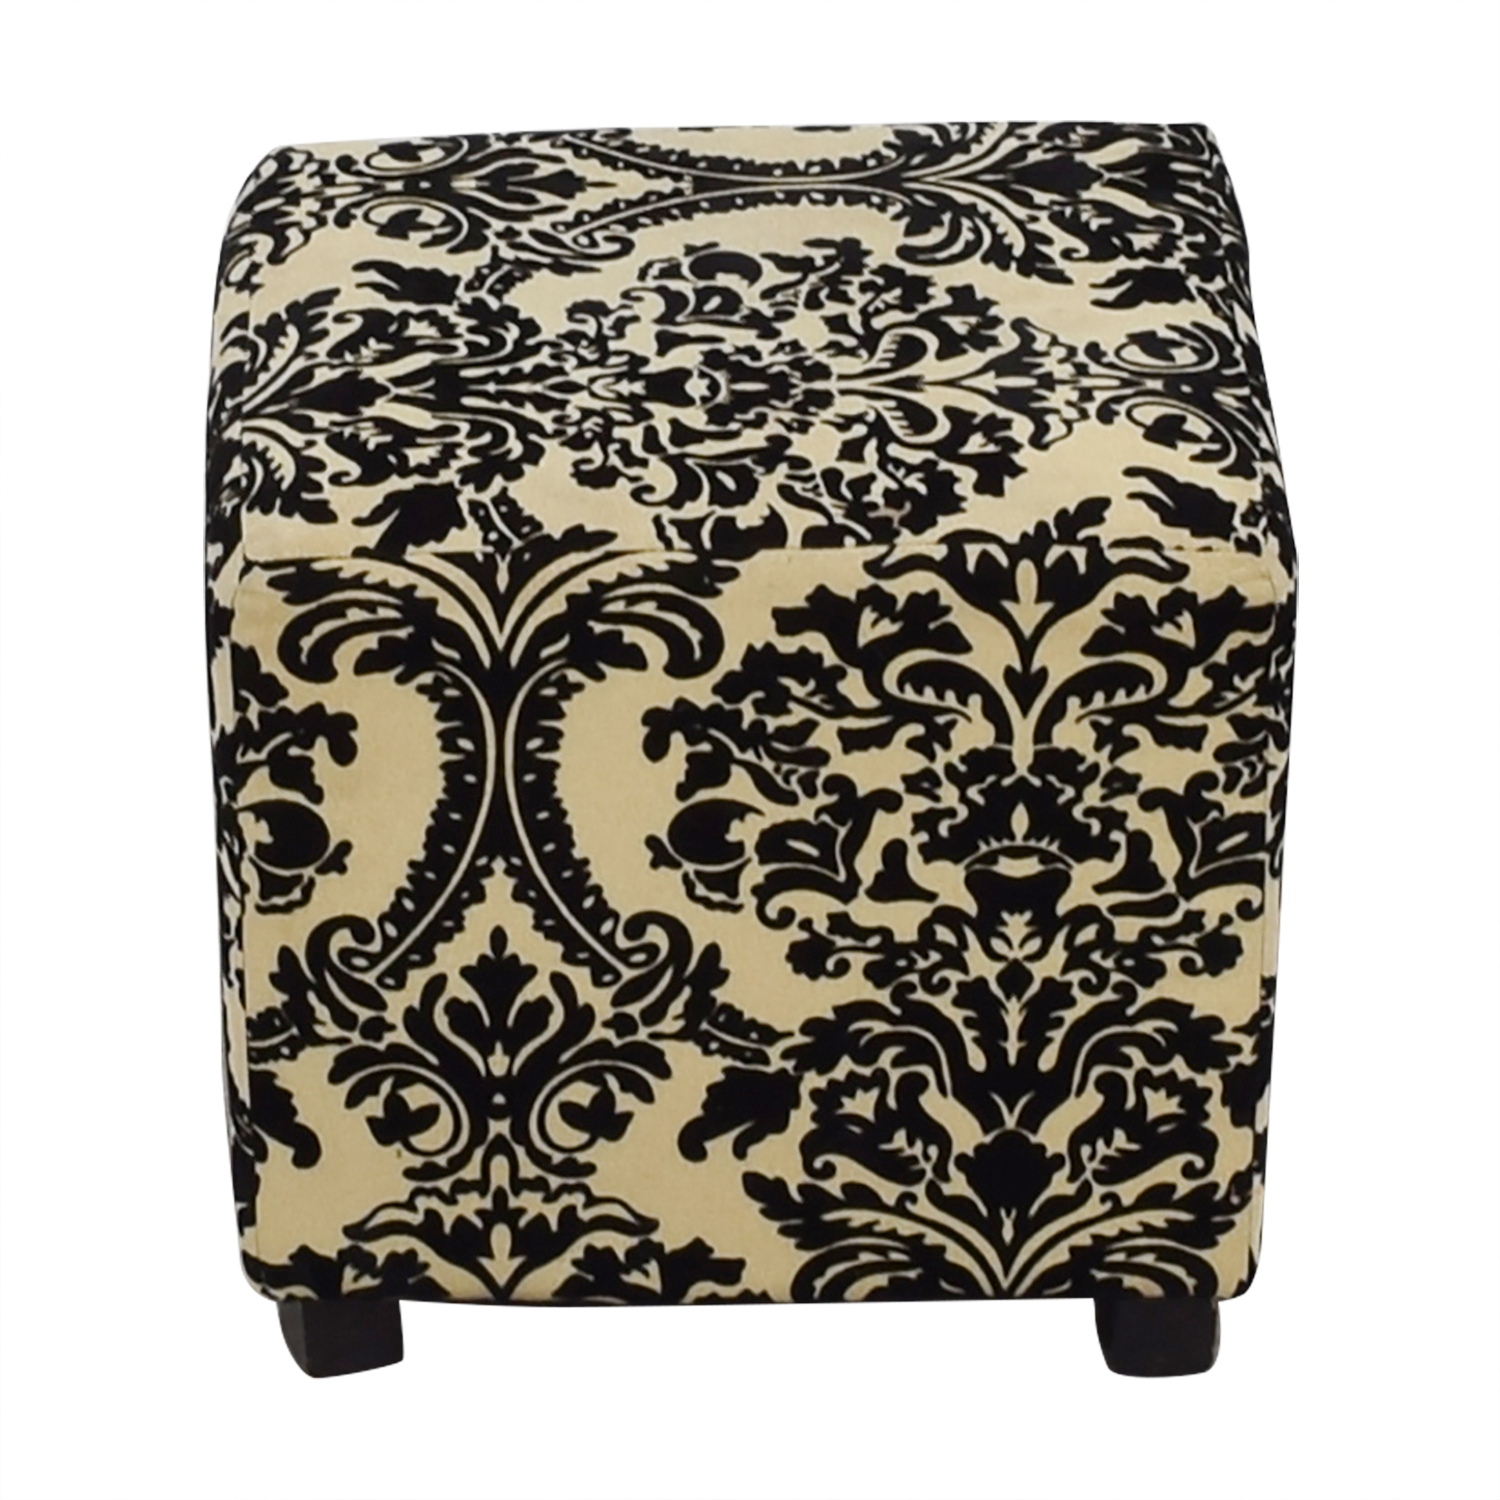 Bed Bath & Beyond Bed Bath & Beyond Black & White Ottoman